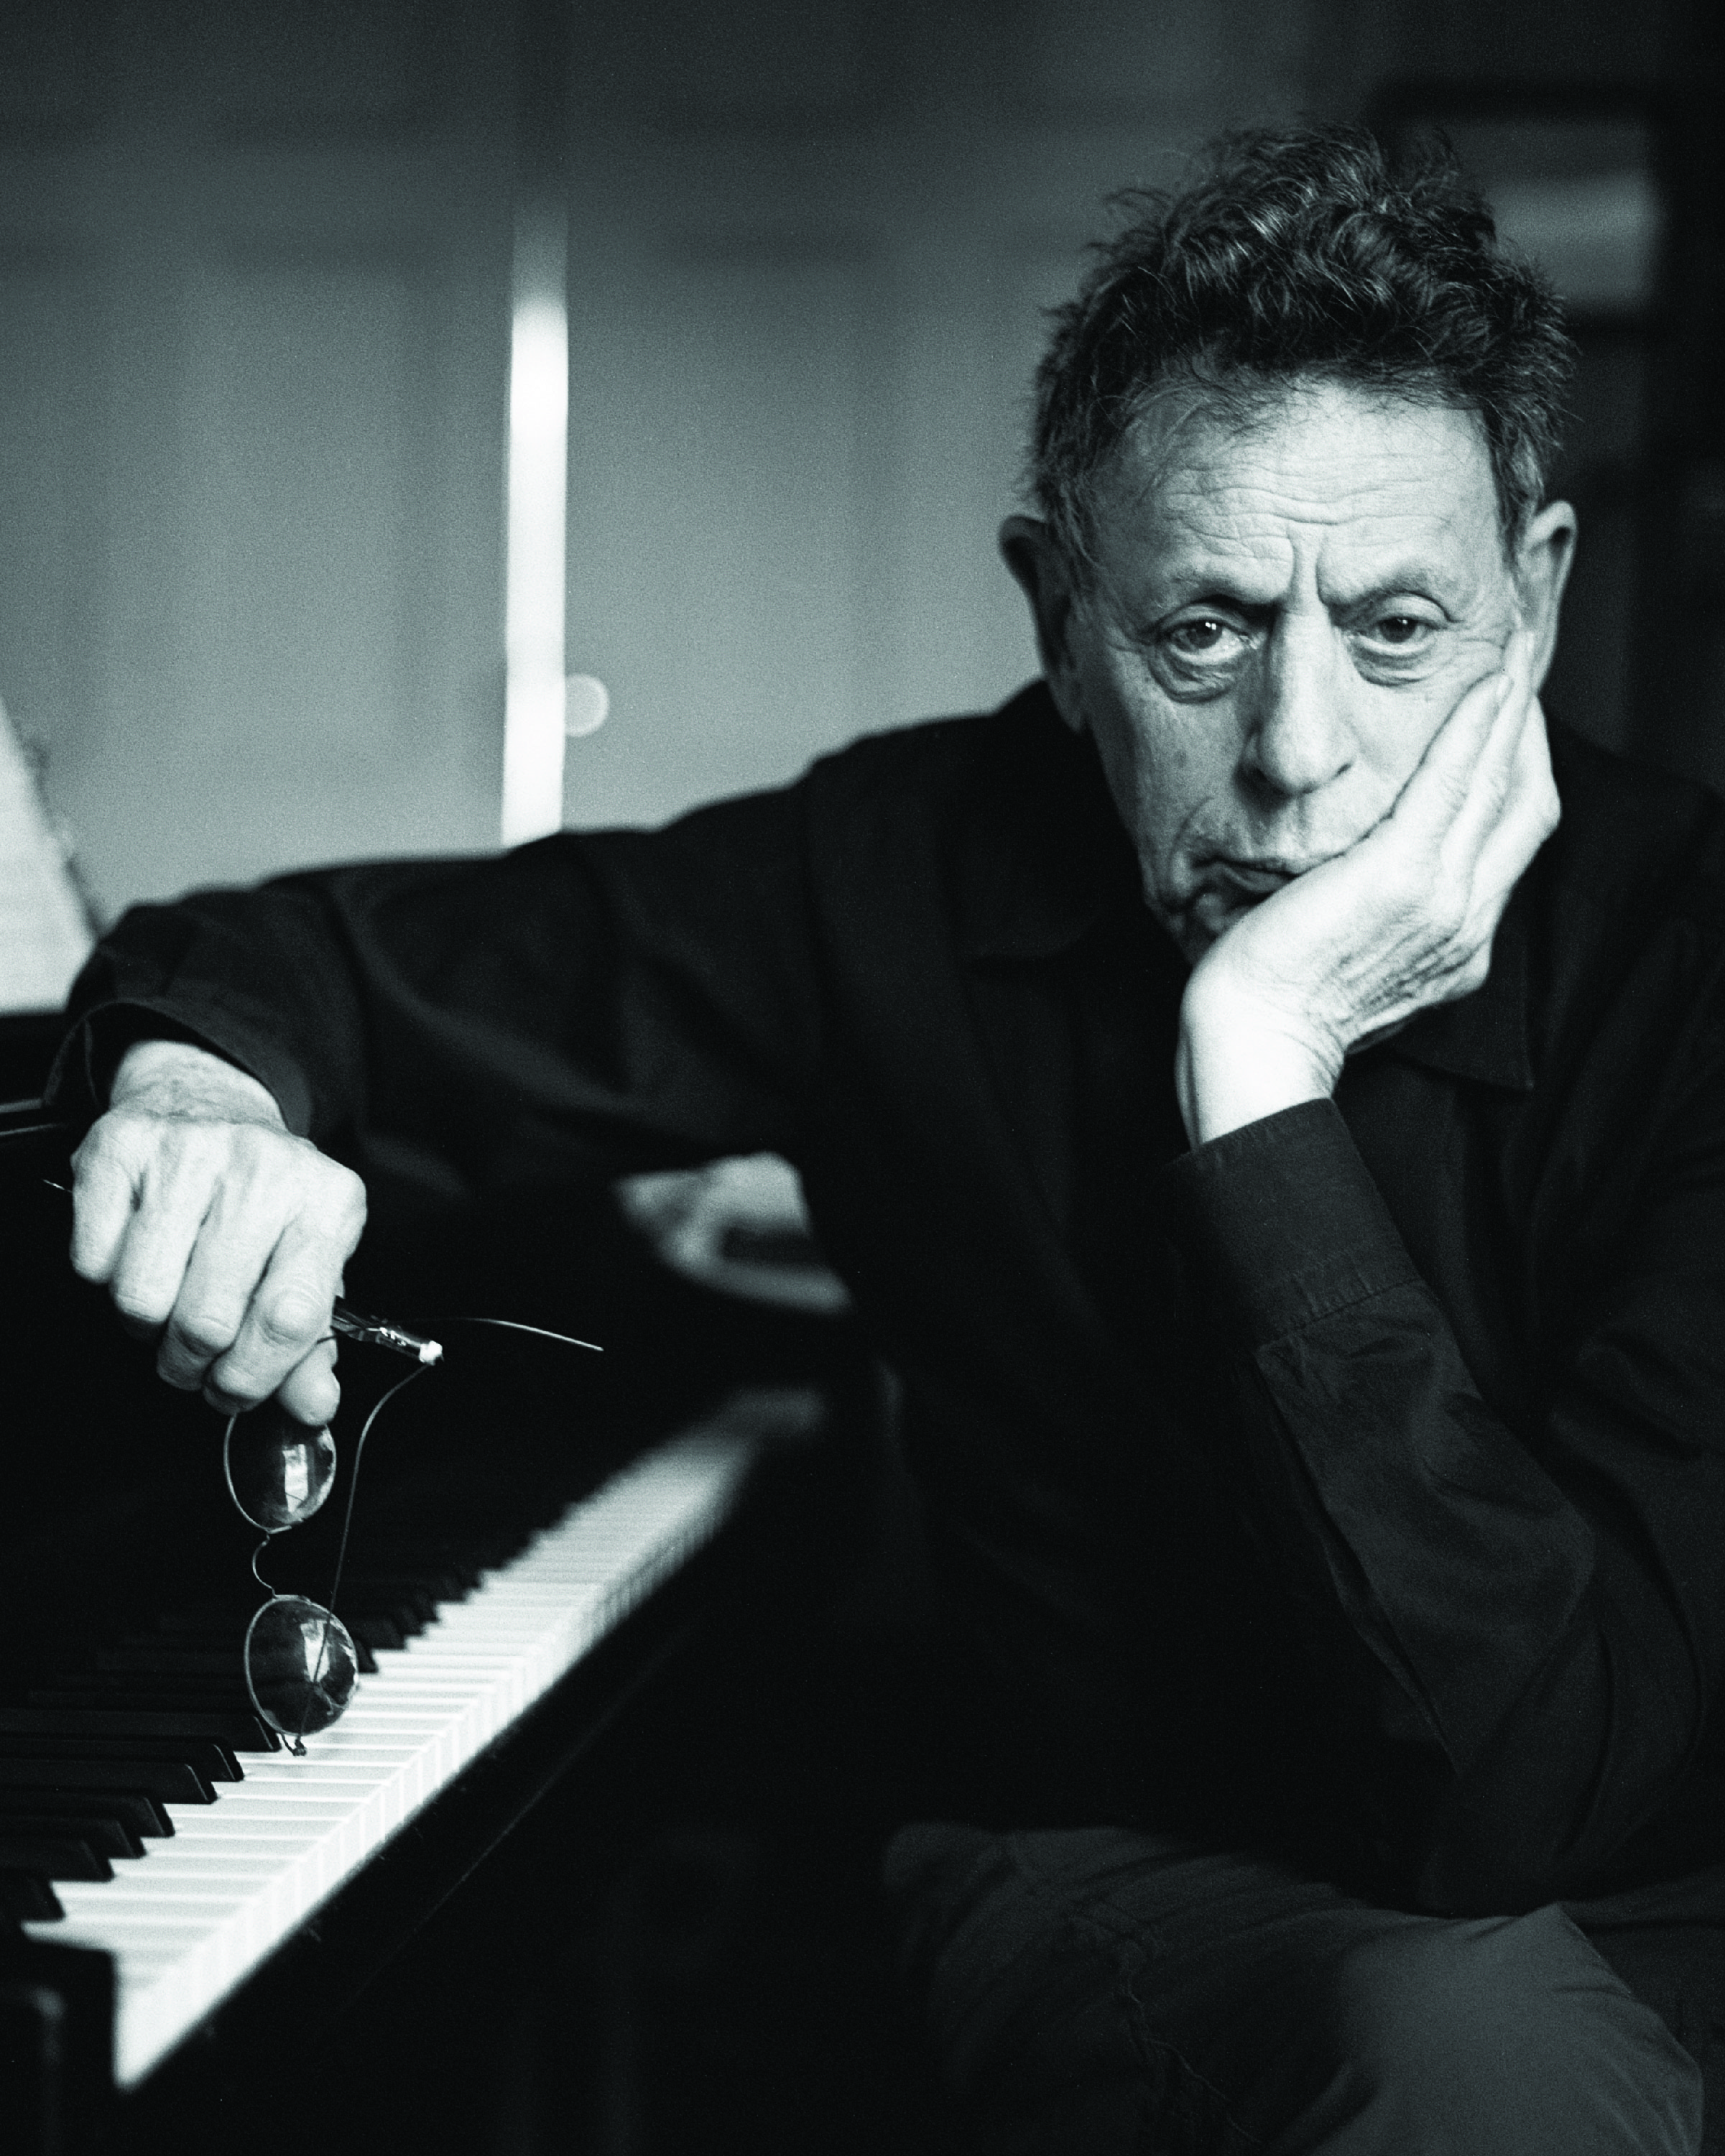 Philip Glass on scoring the 1982 film that sent out 'a big signal' on the environment